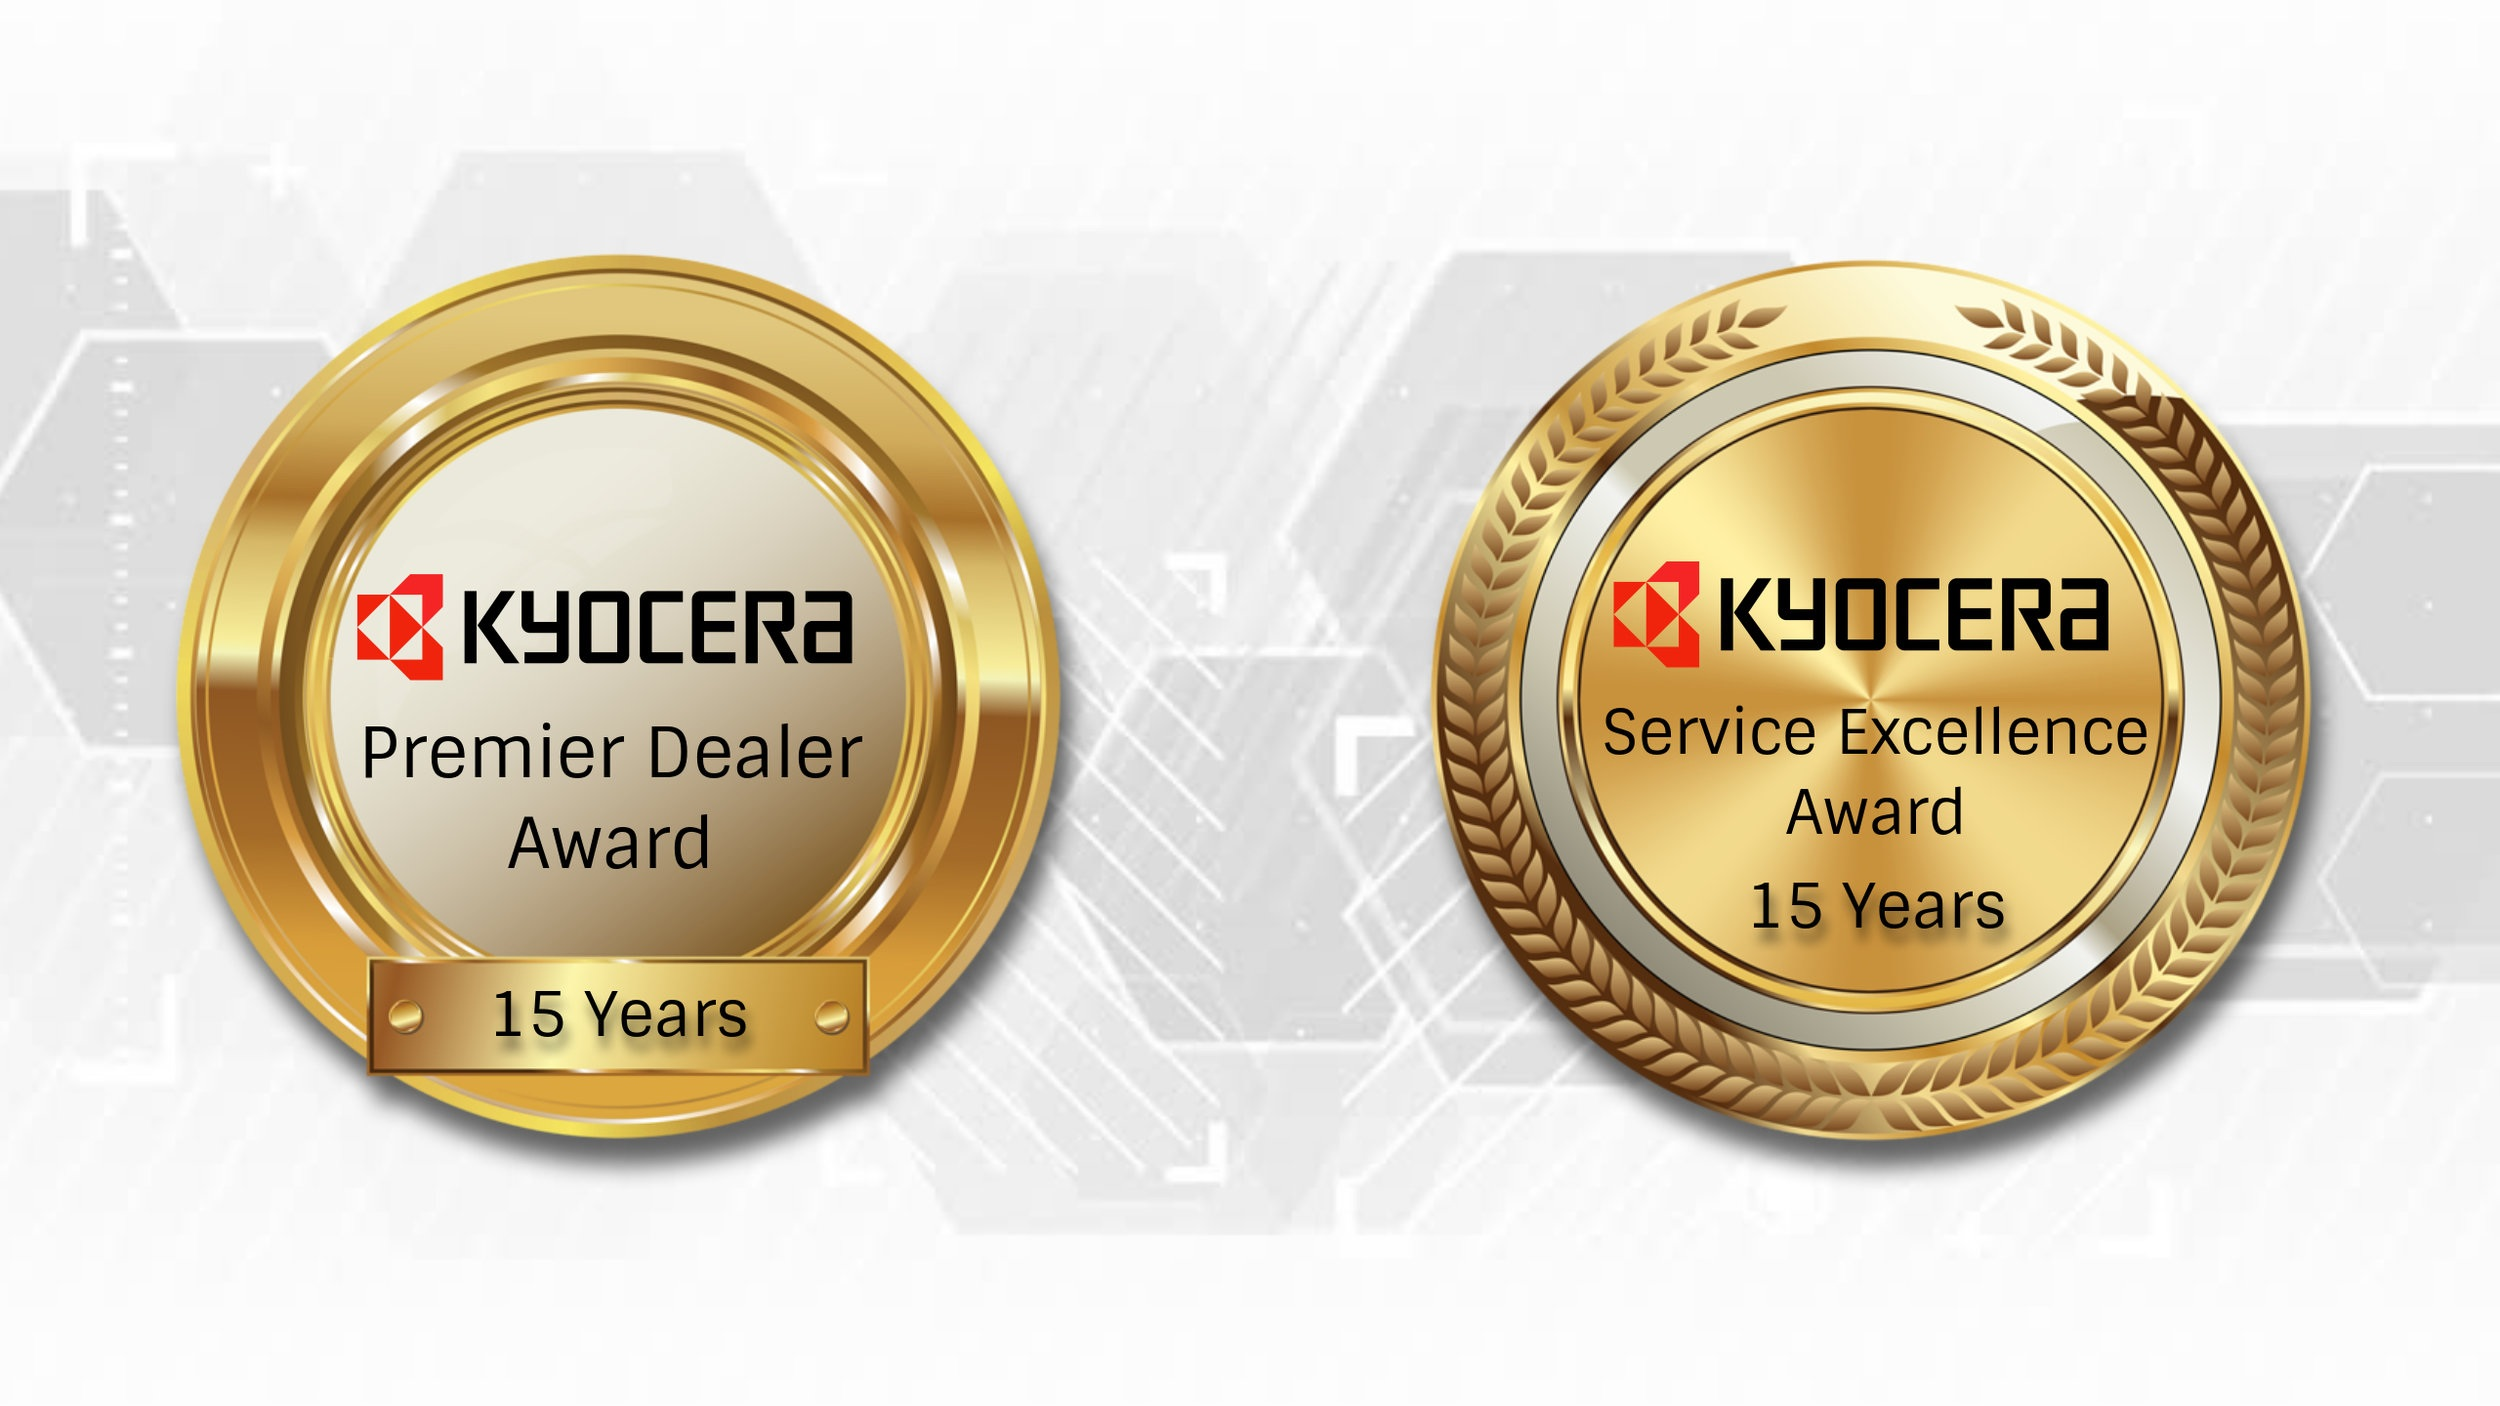 kyocera+awards.jpg